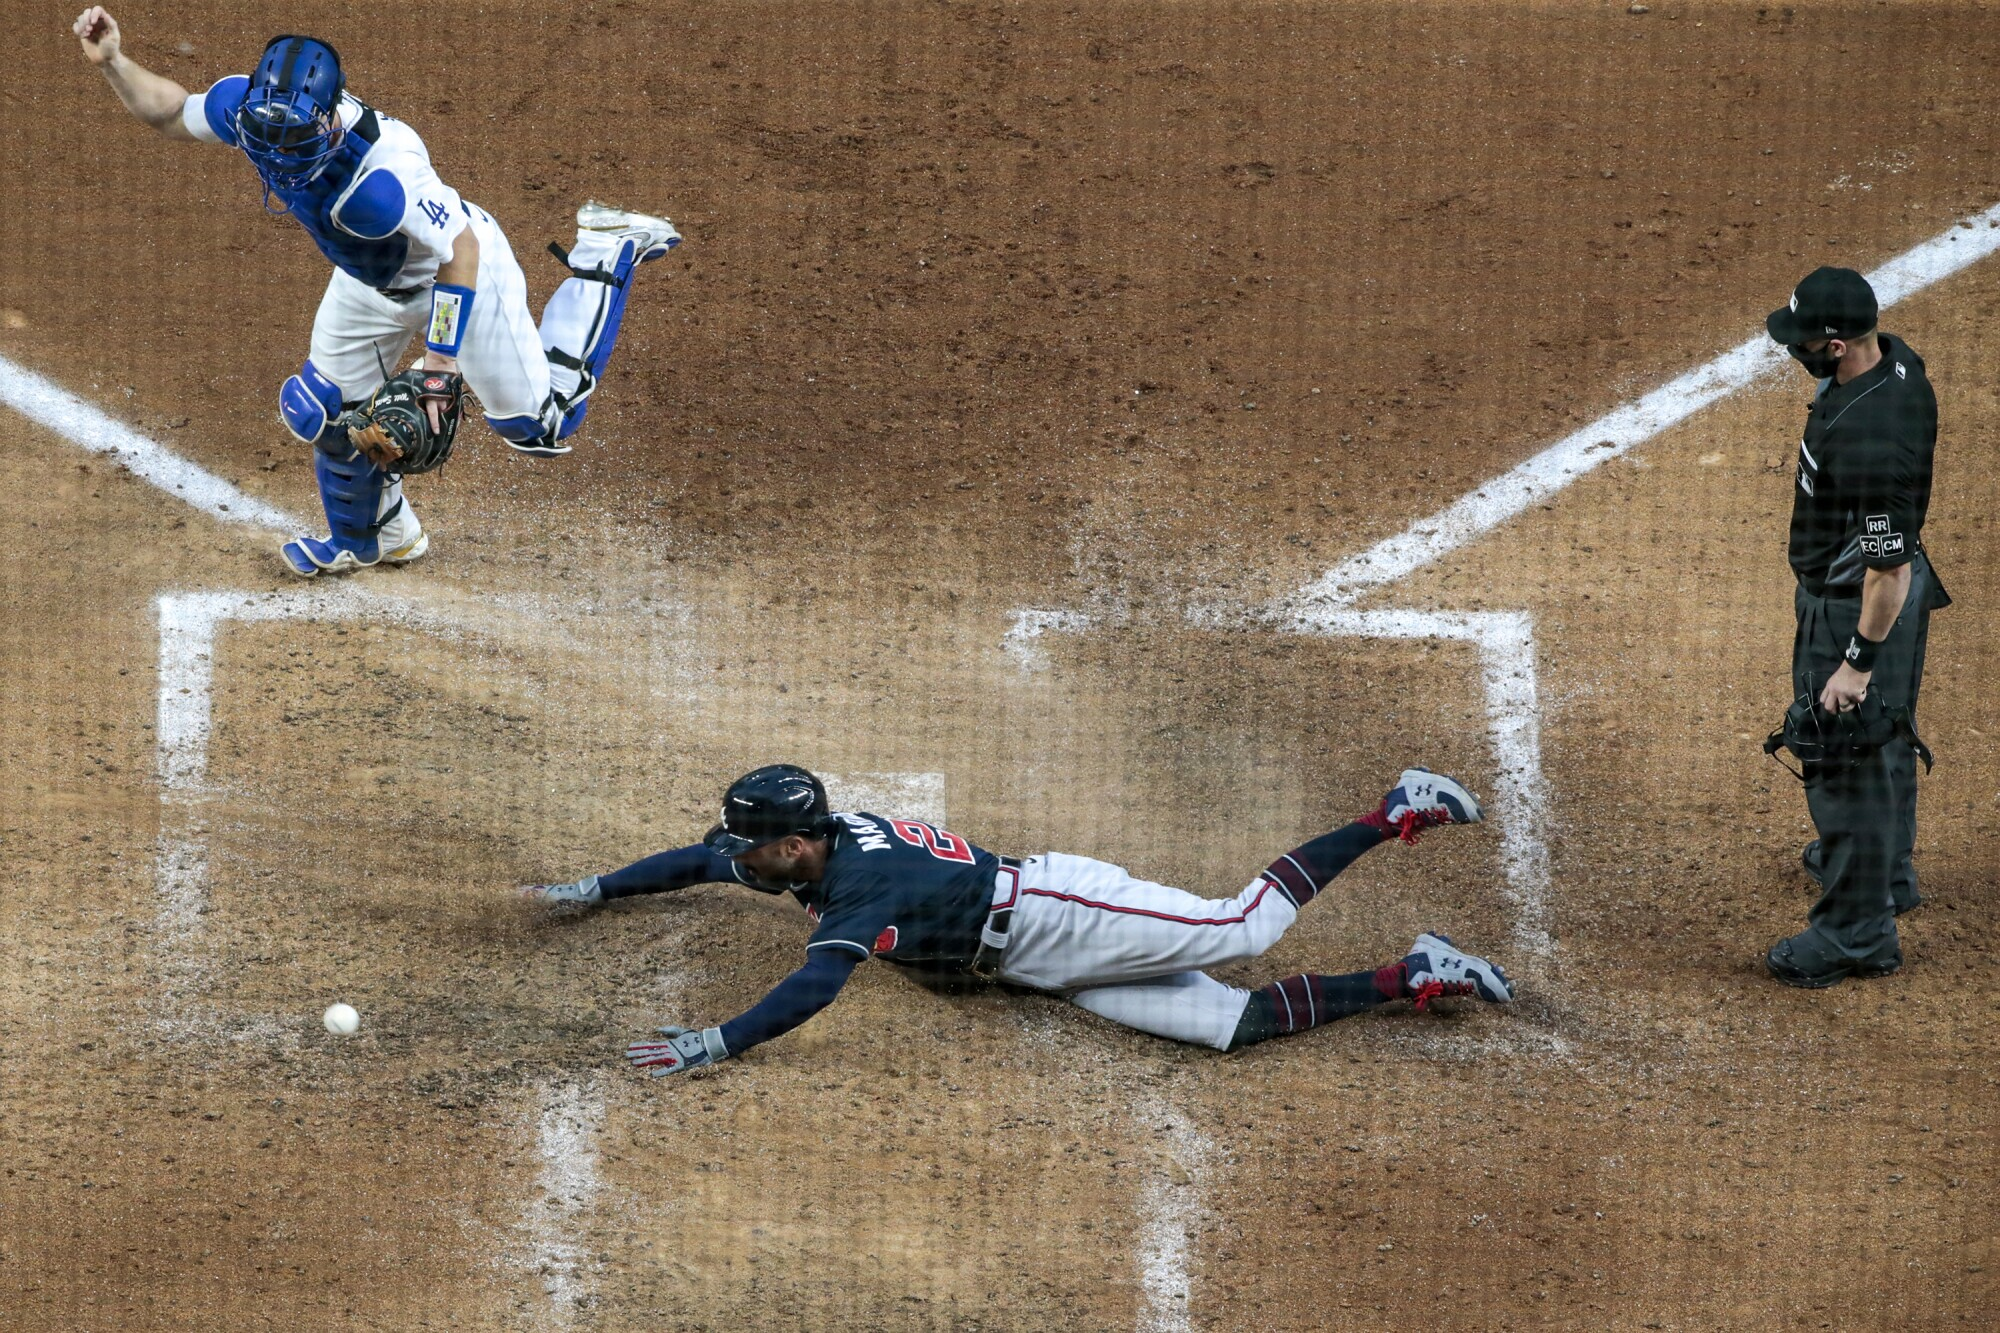 Atlanta's Nick Markakis scores past Dodgers catcher Will Smith during the fifth inning of Game 2.